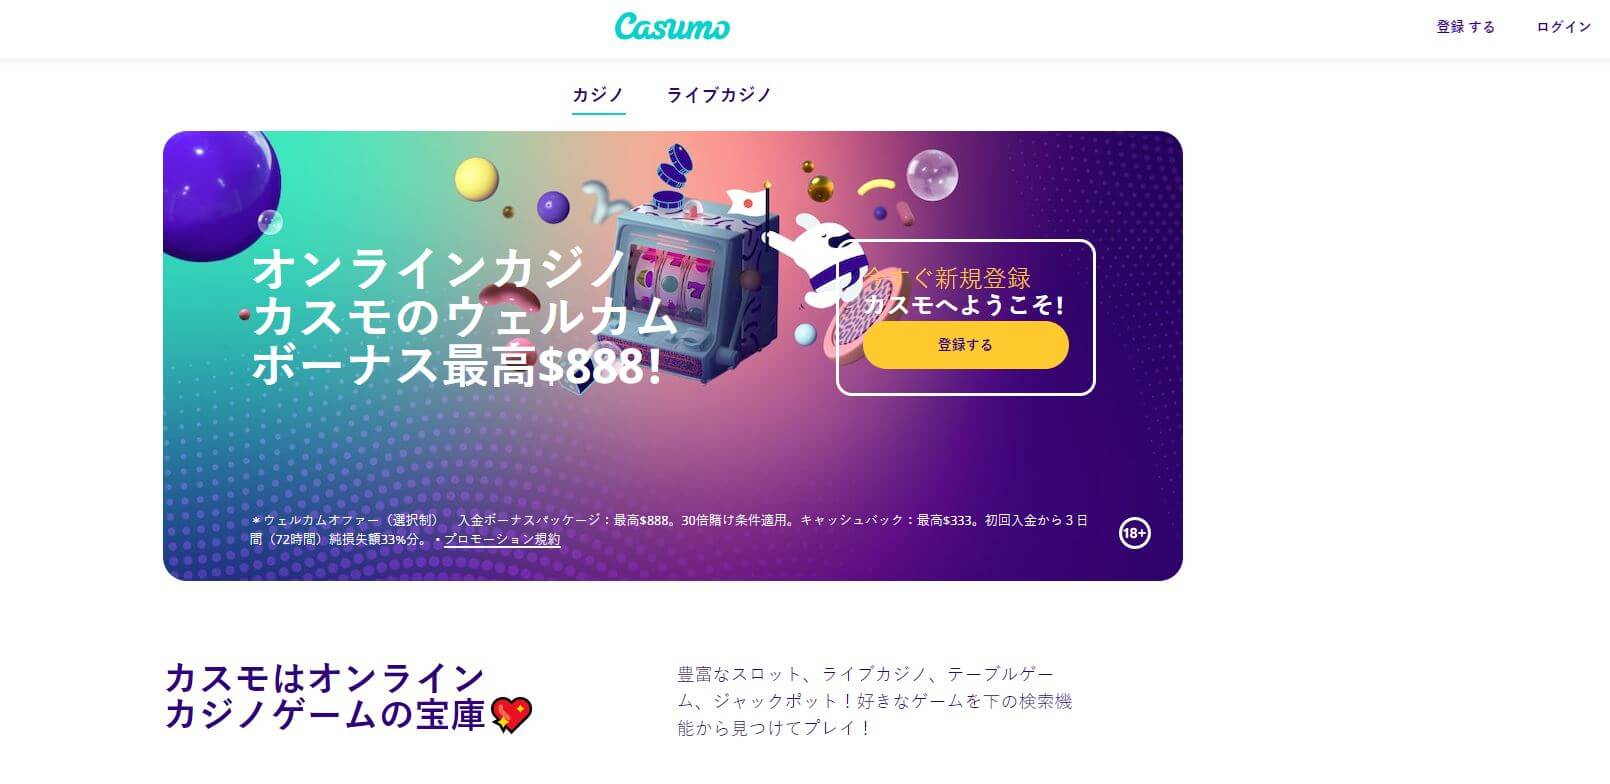 casumo japan home page